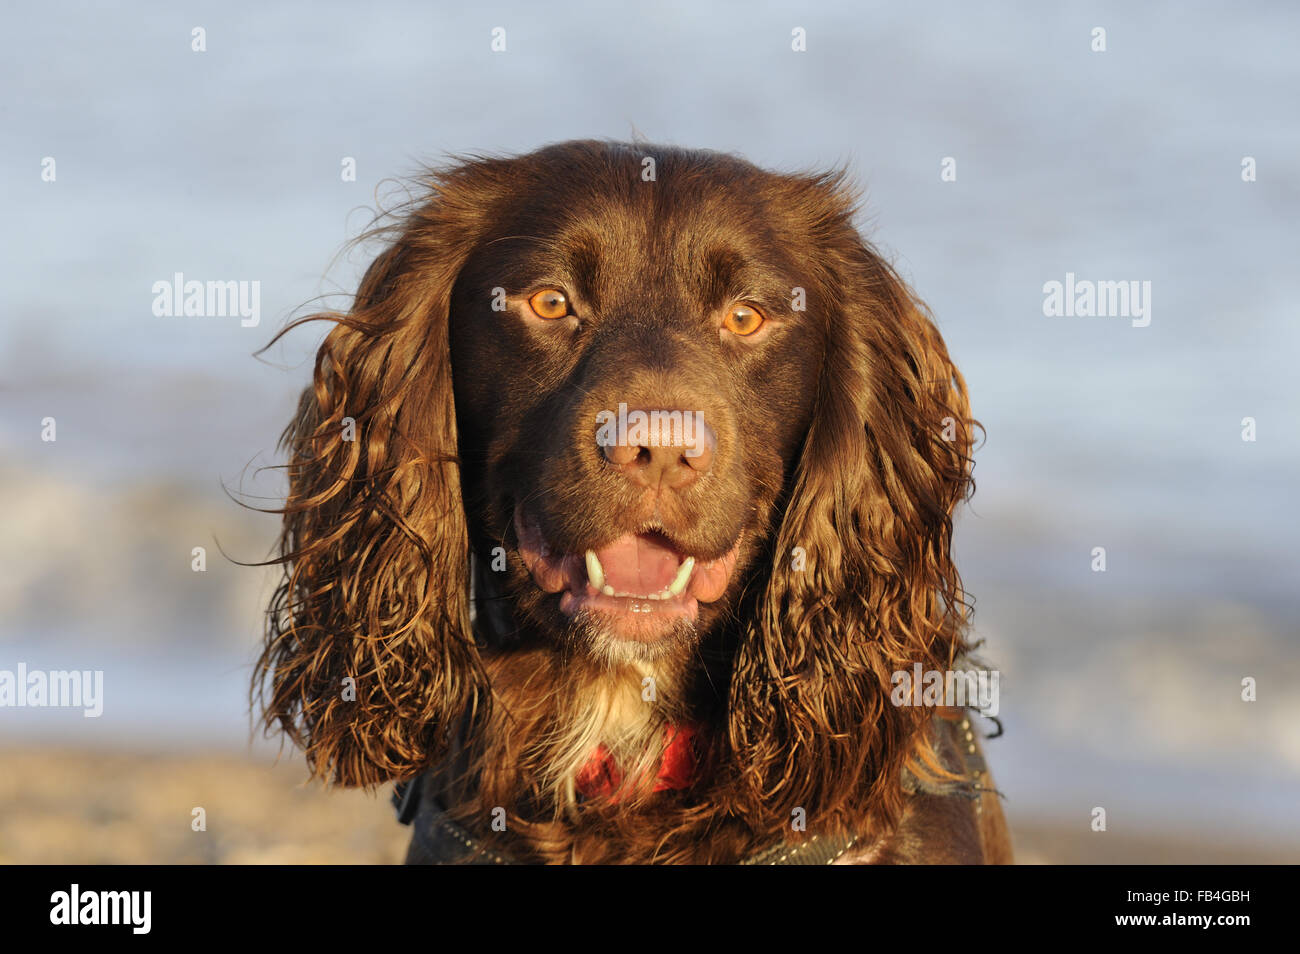 Domestic Dog, Working Cocker Spaniel type, portrait, photographed at Aldeburgh, Suffolk, England, Dec 2015 Stock Photo